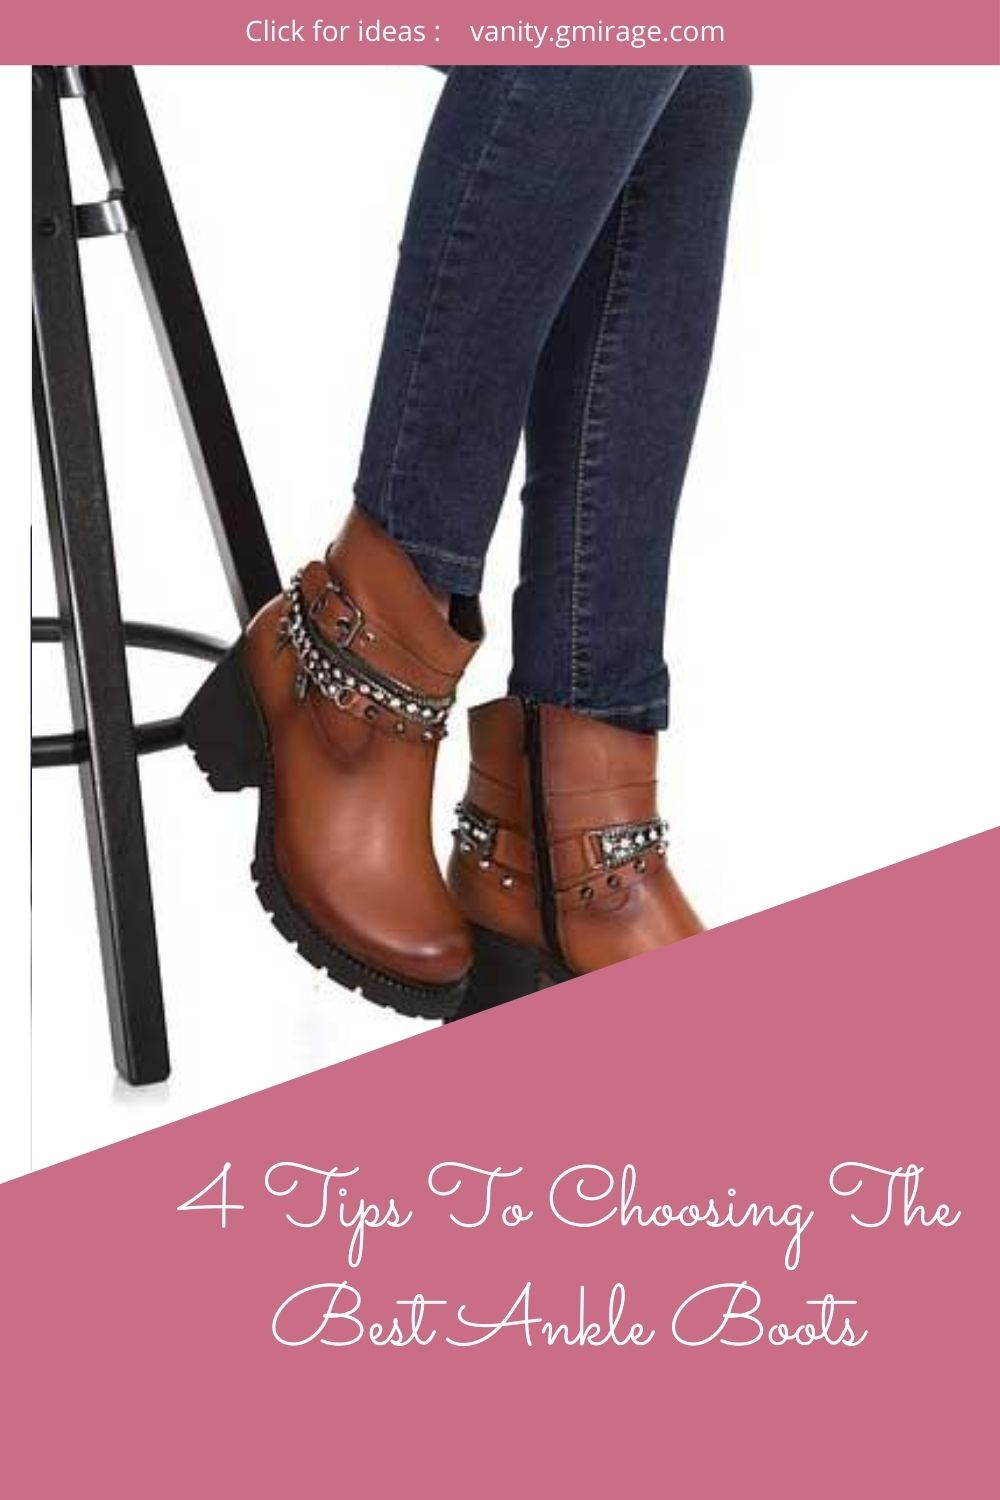 4 Tips To Choosing The Best Ankle Boots